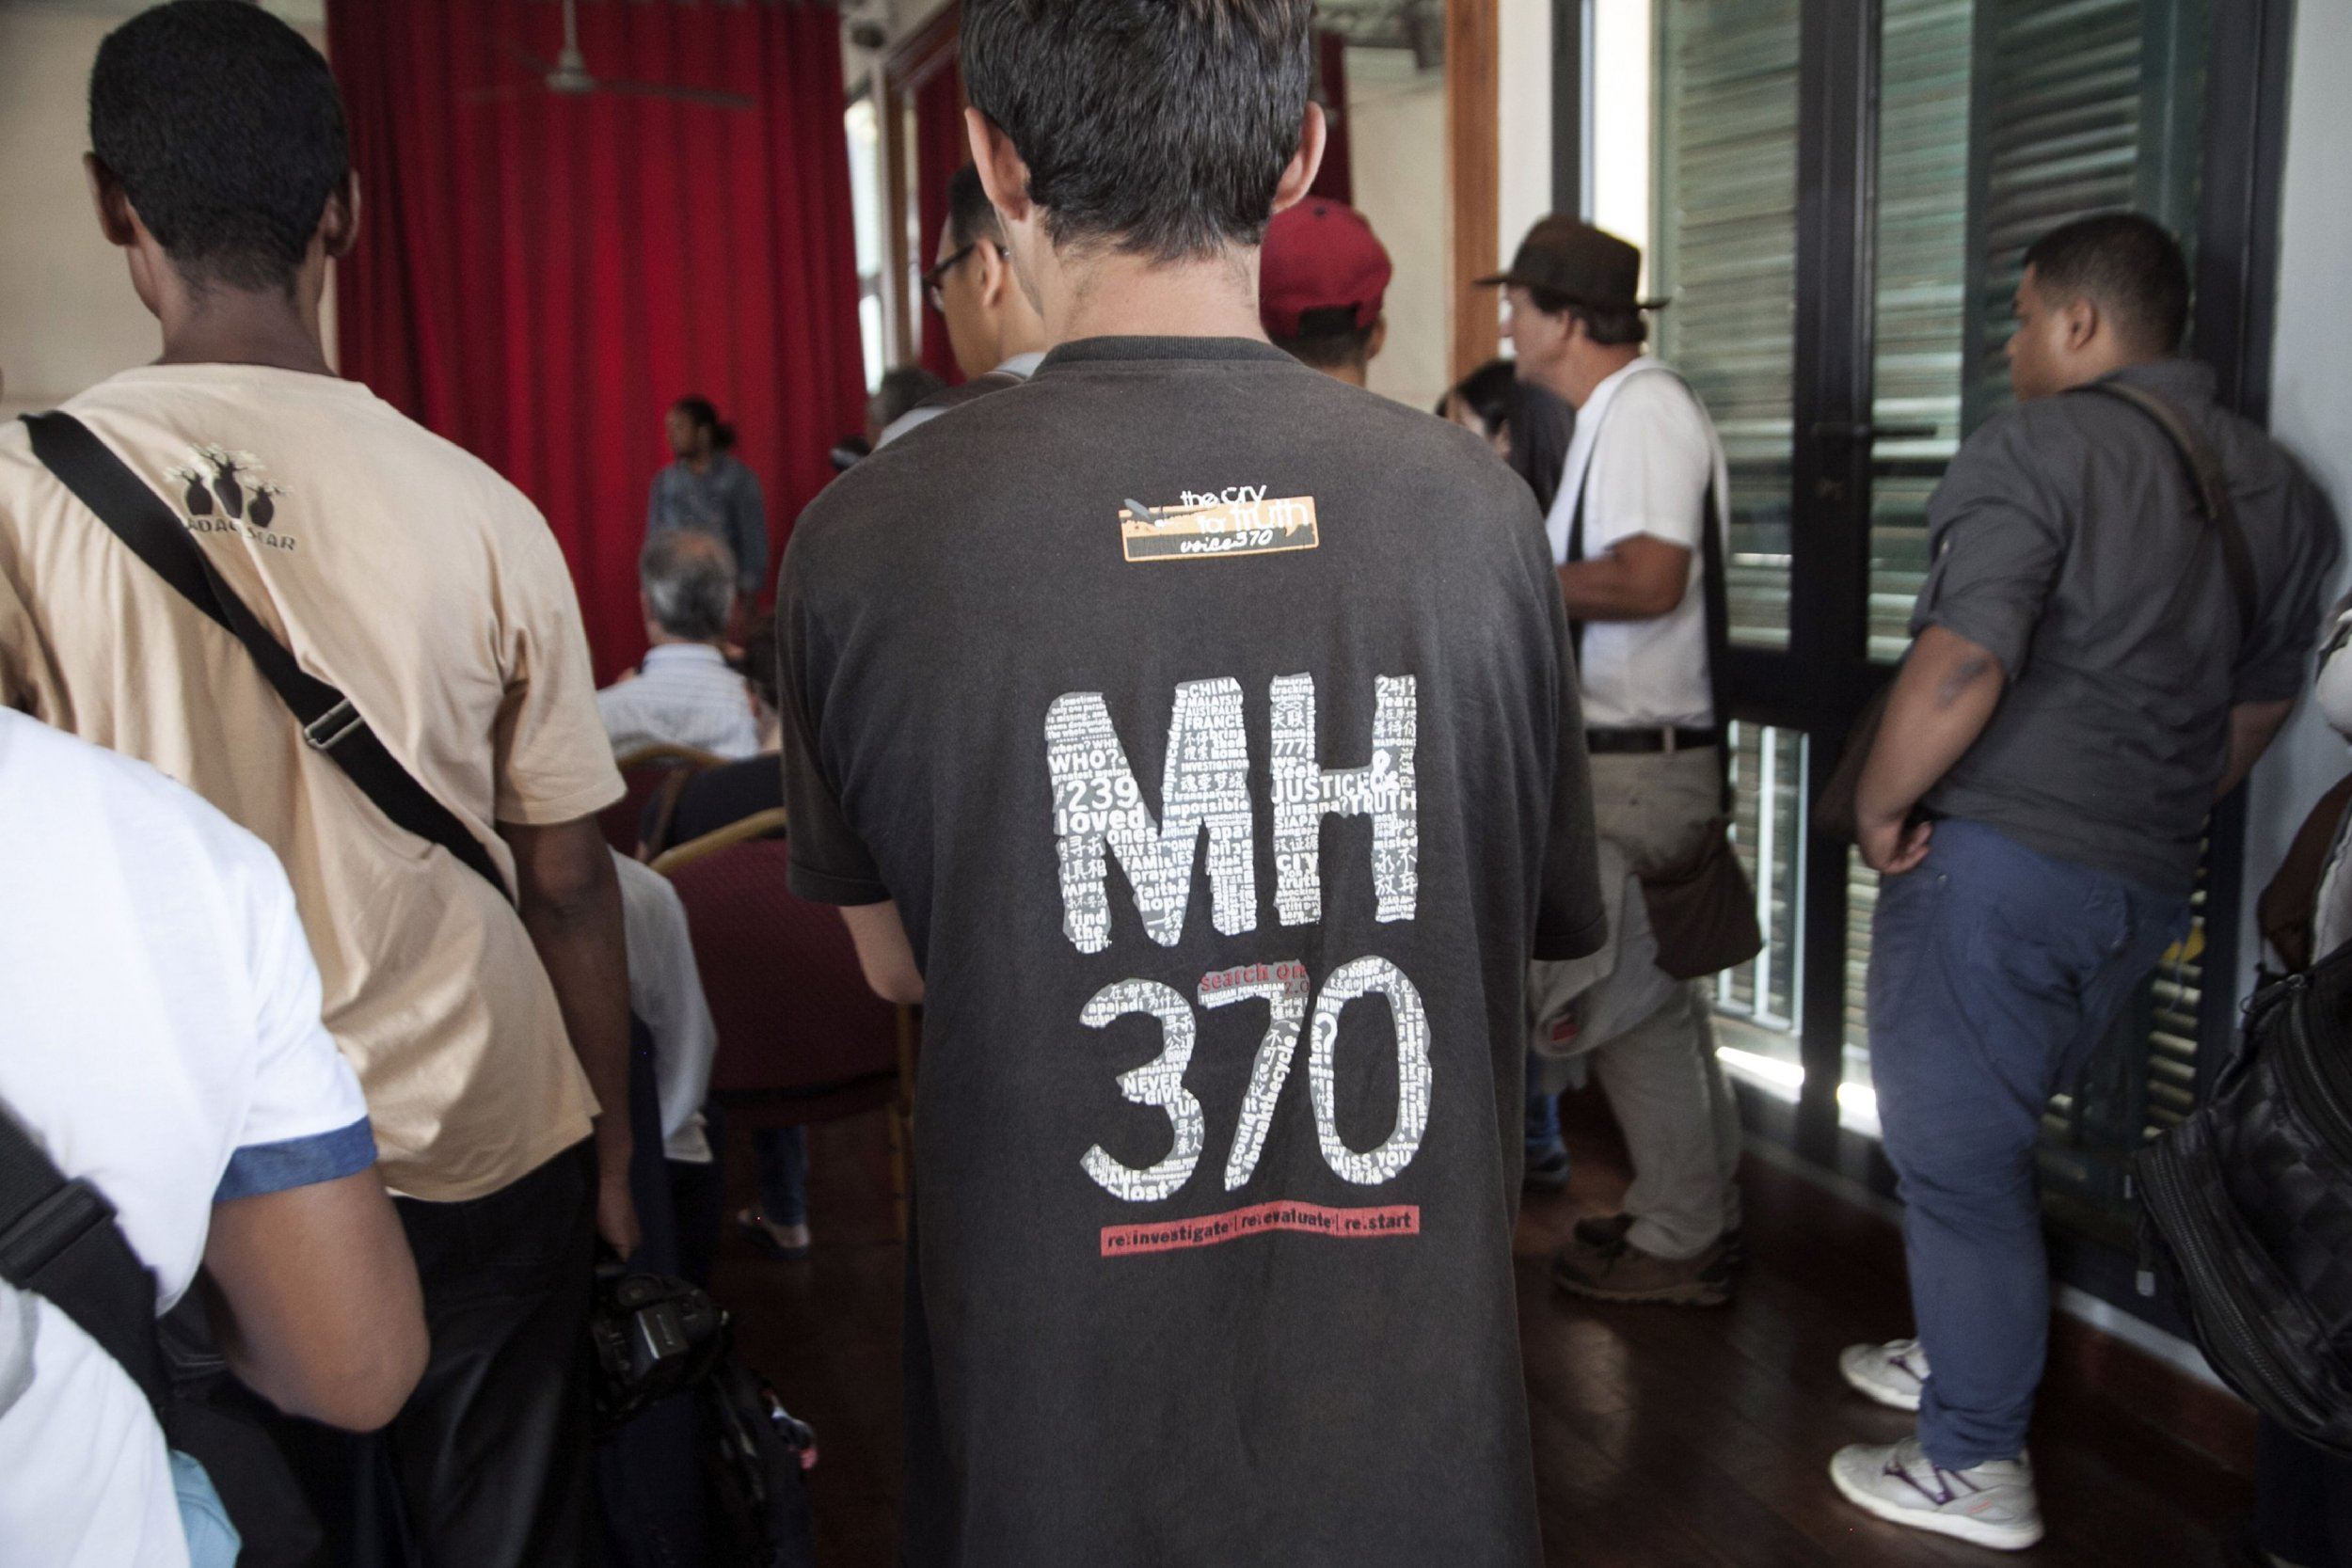 MH370 families press conference